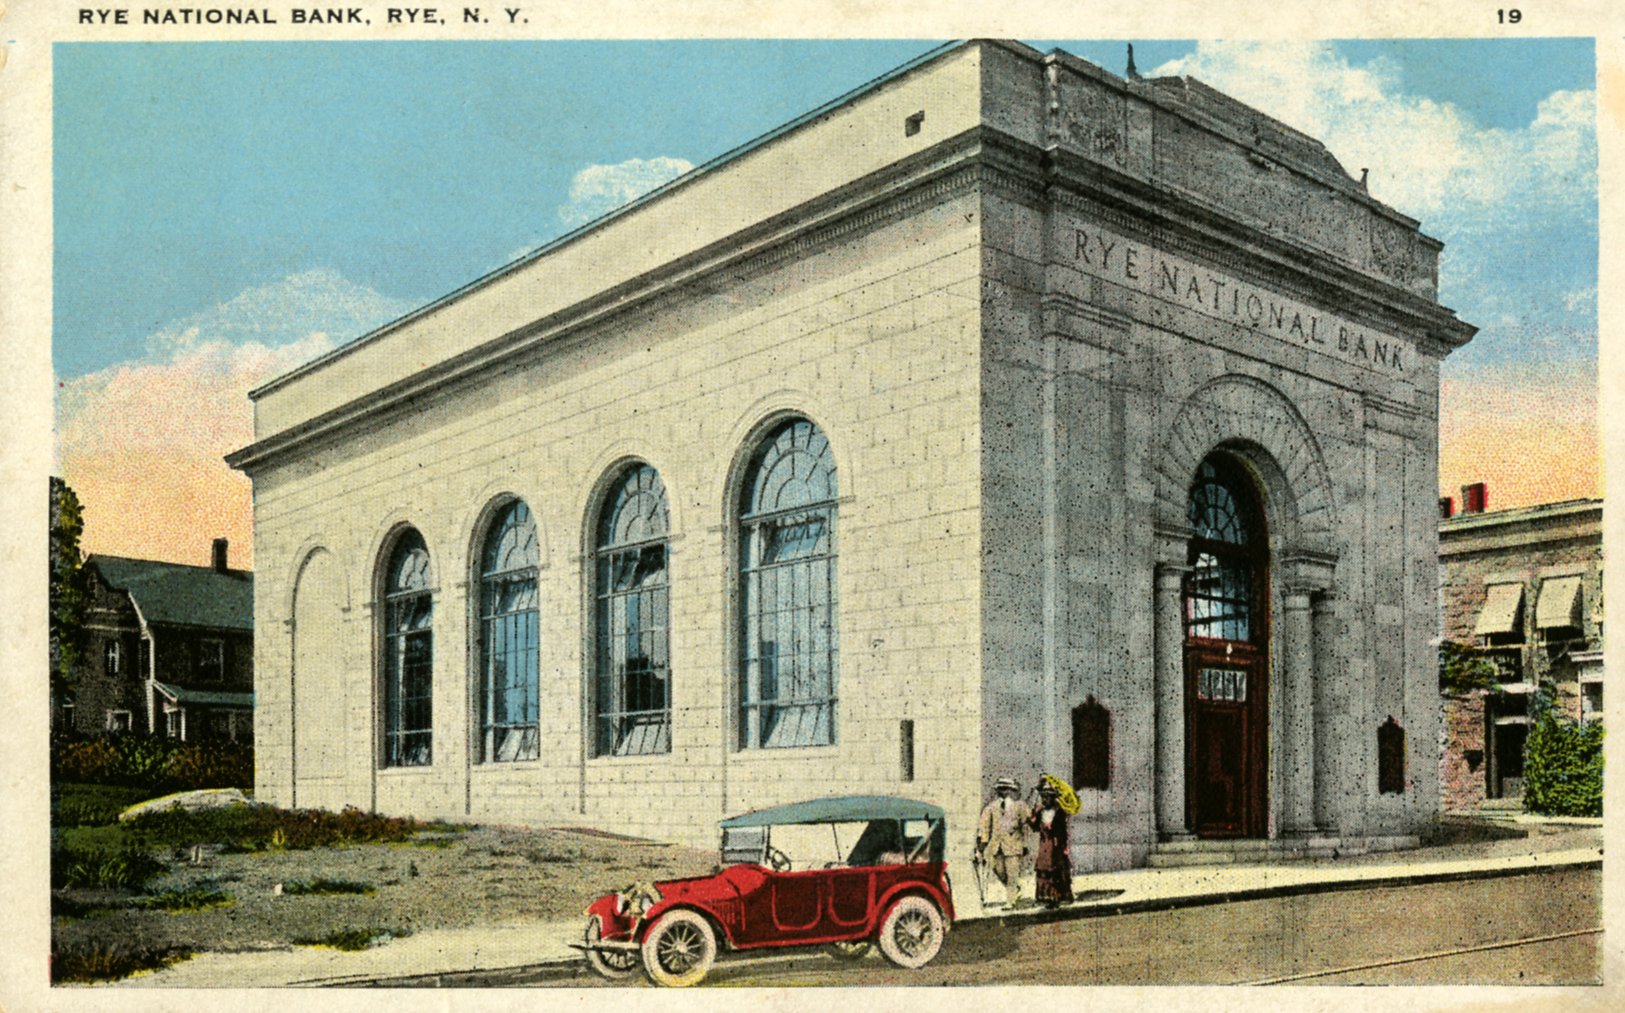 Rye National Bank Postcard.jpg